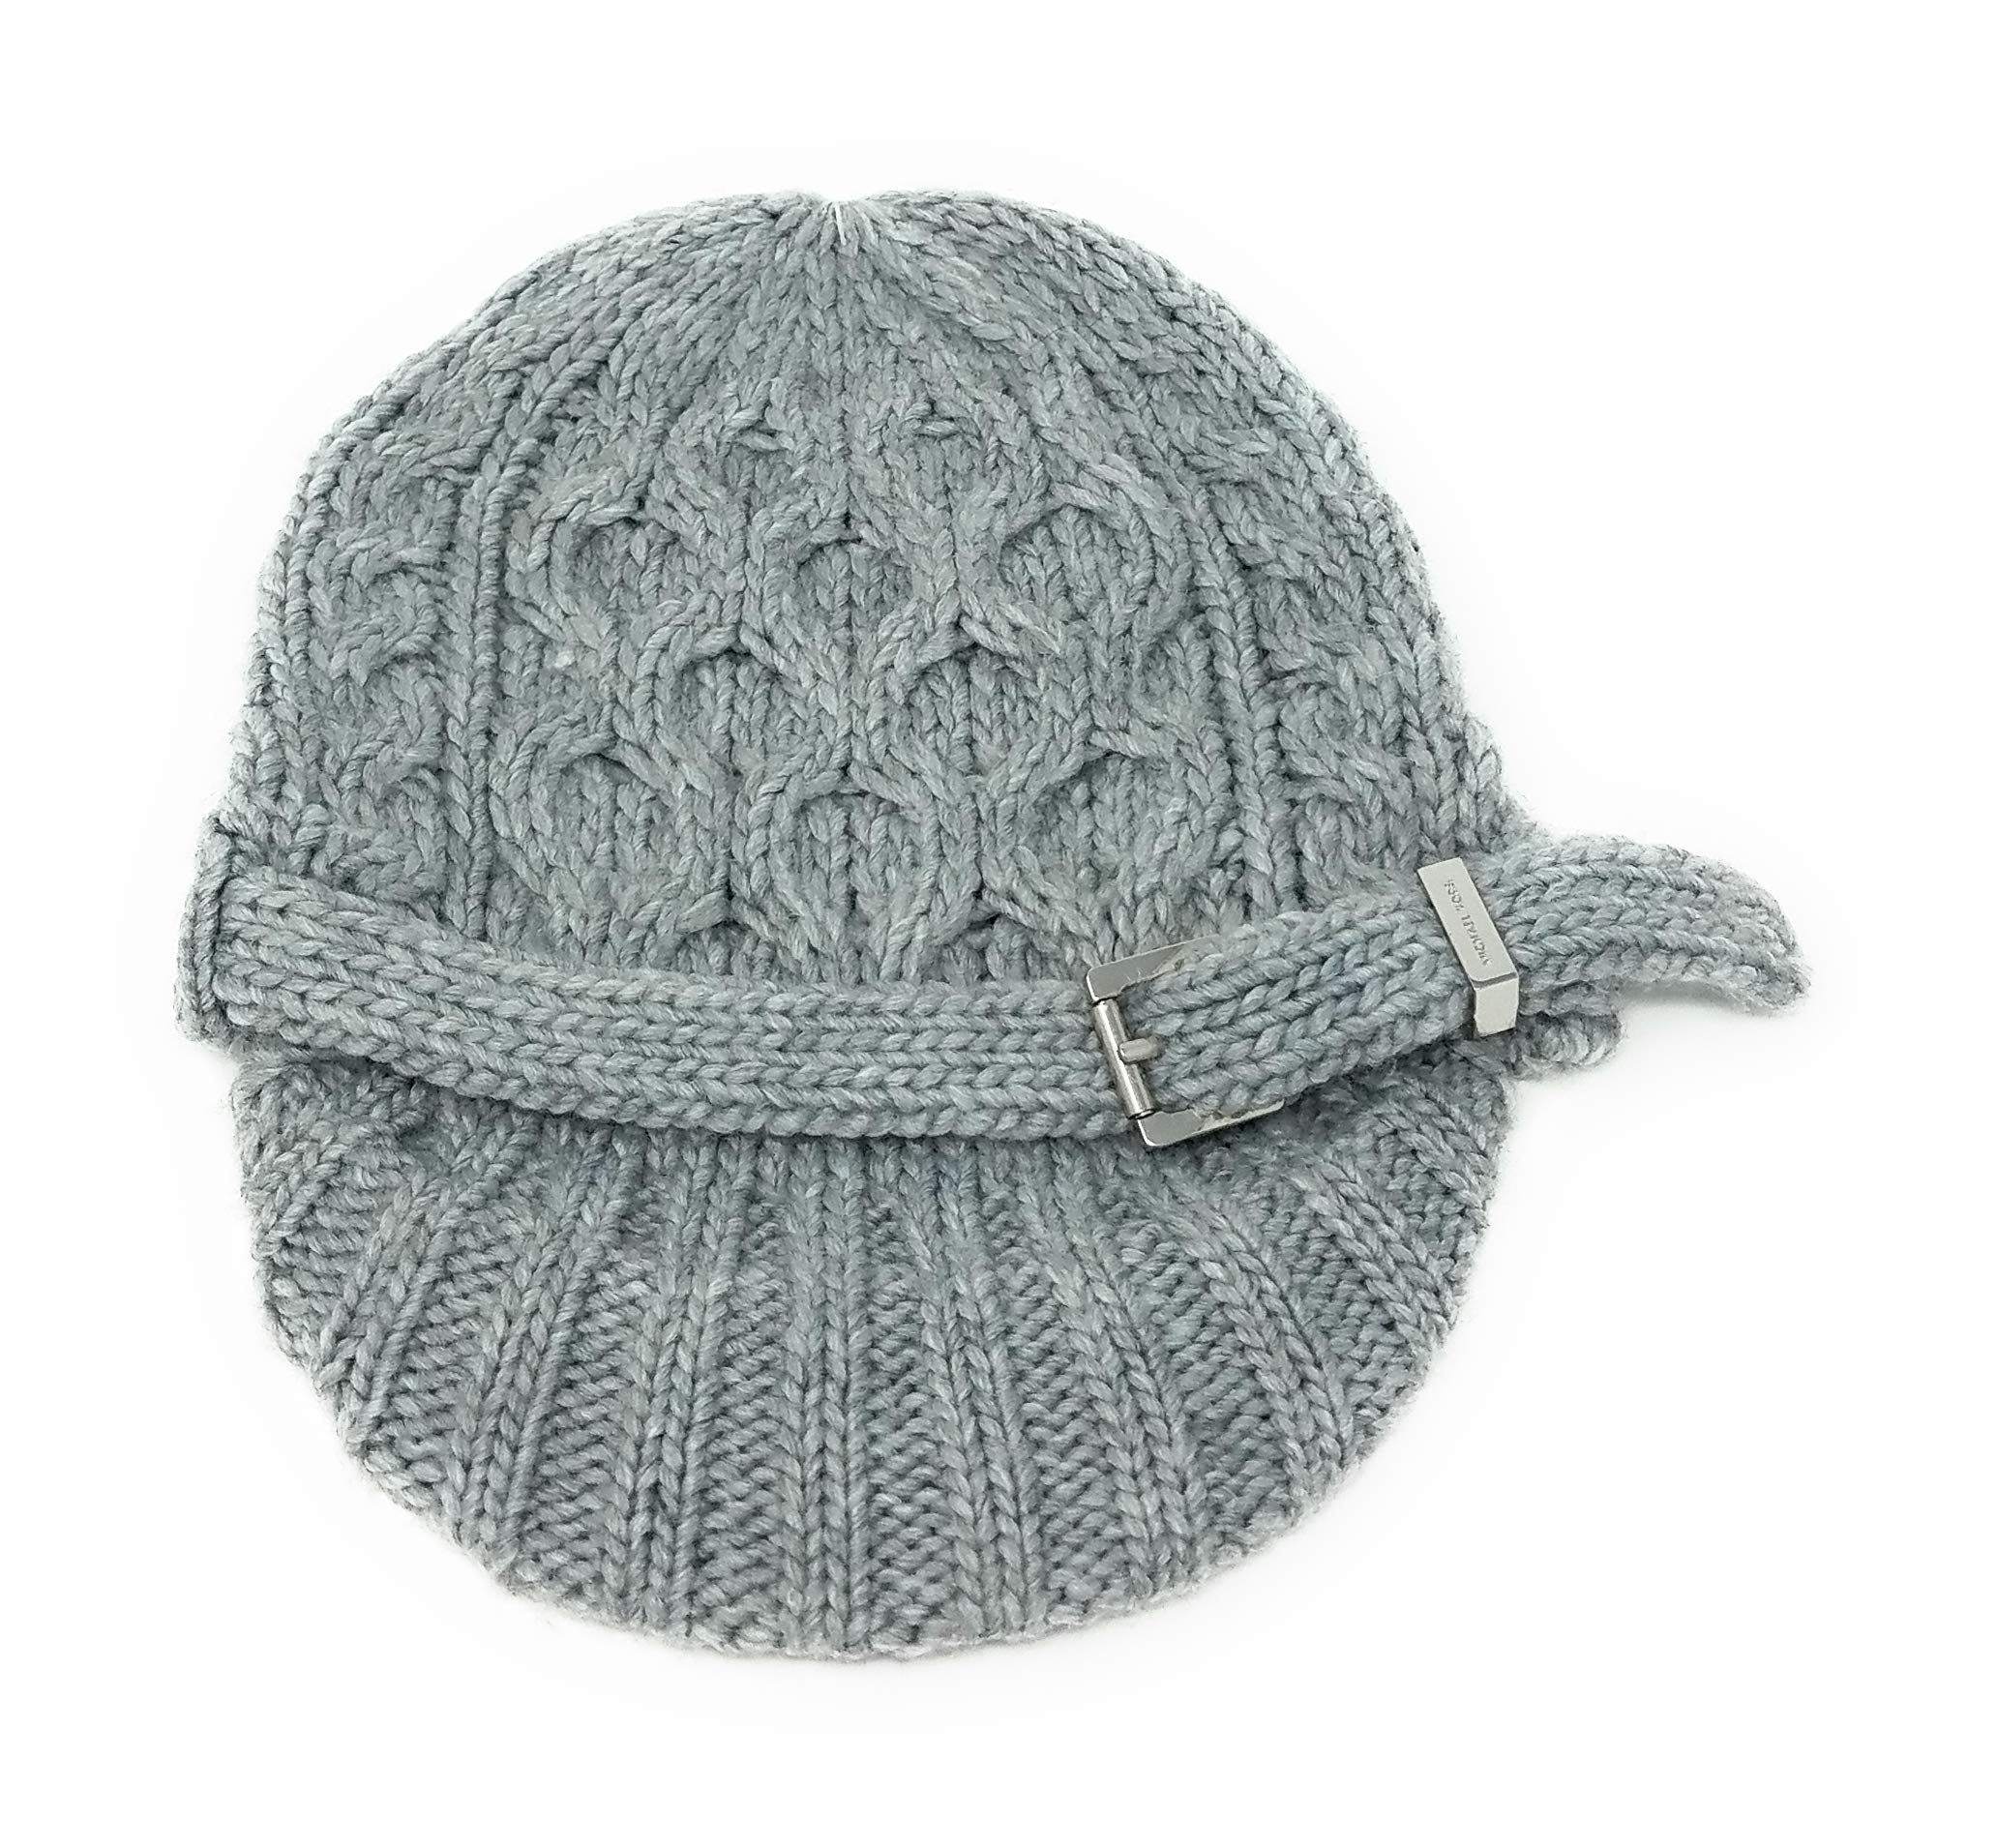 Michael Kors Cableknit Newsboy Cap with Silver Buckle,Grey